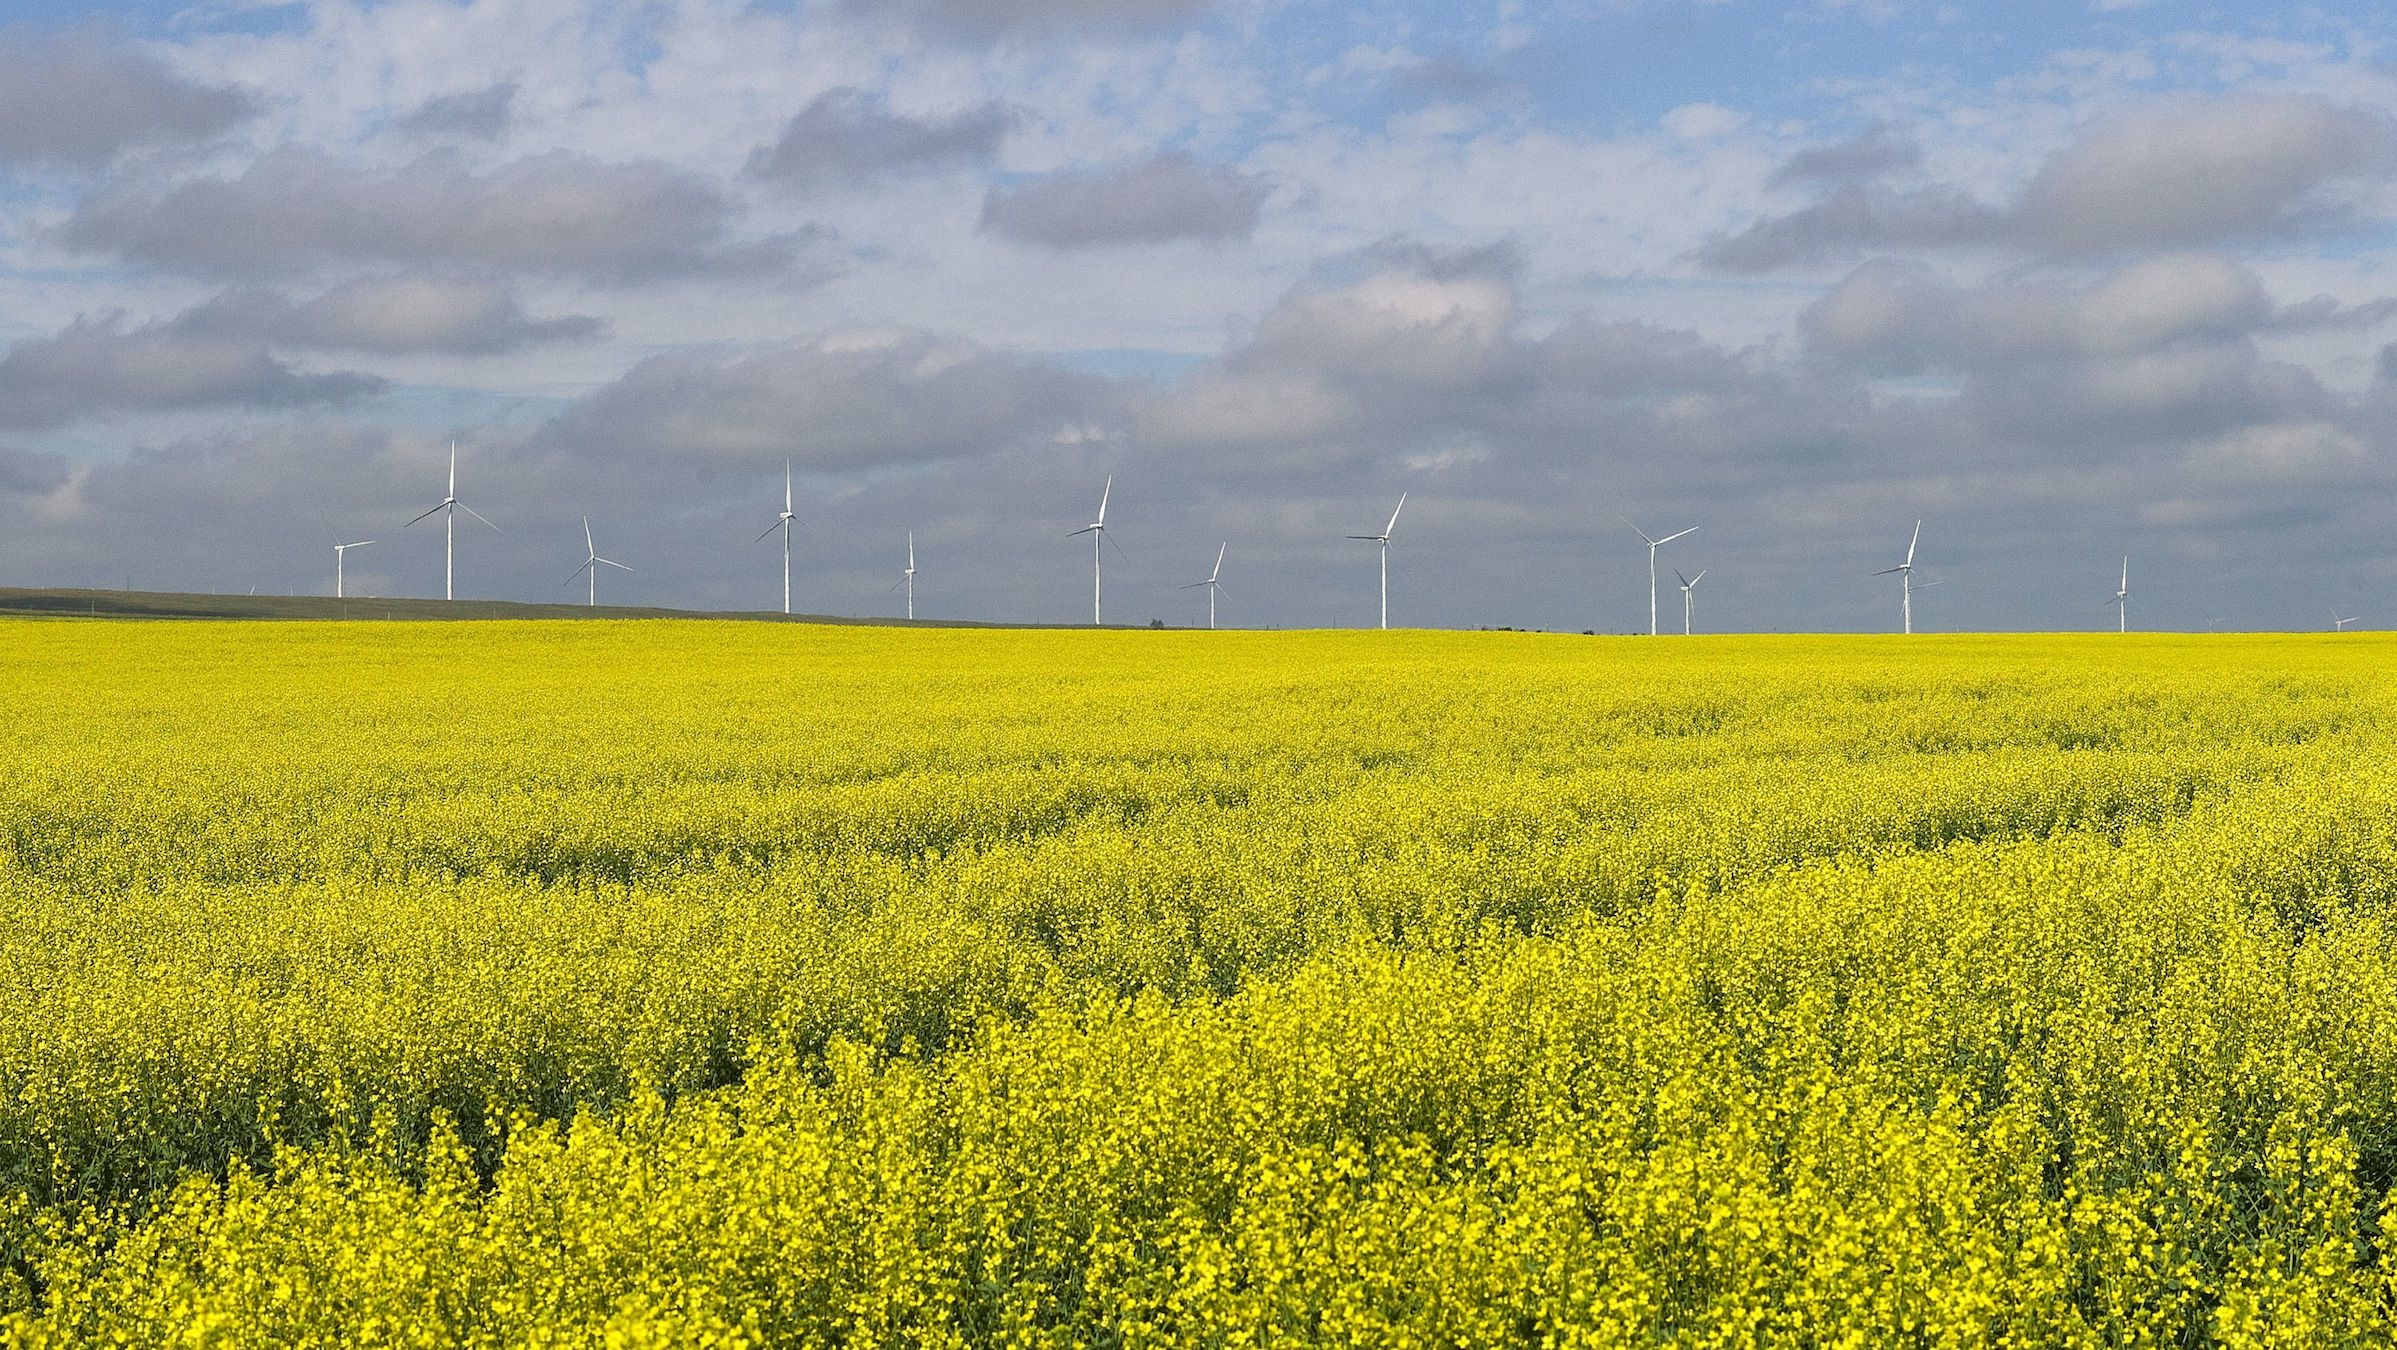 A canola crop used for making cooking oil sits in full bloom on the Canadian prairies with windmills in the background near Fort Macleod, Alberta, July 11, 2011. REUTERS/Todd Korol  (CANADA - Tags: ENVIRONMENT FOOD AGRICULTURE BUSINESS) - RTR2ORKJ